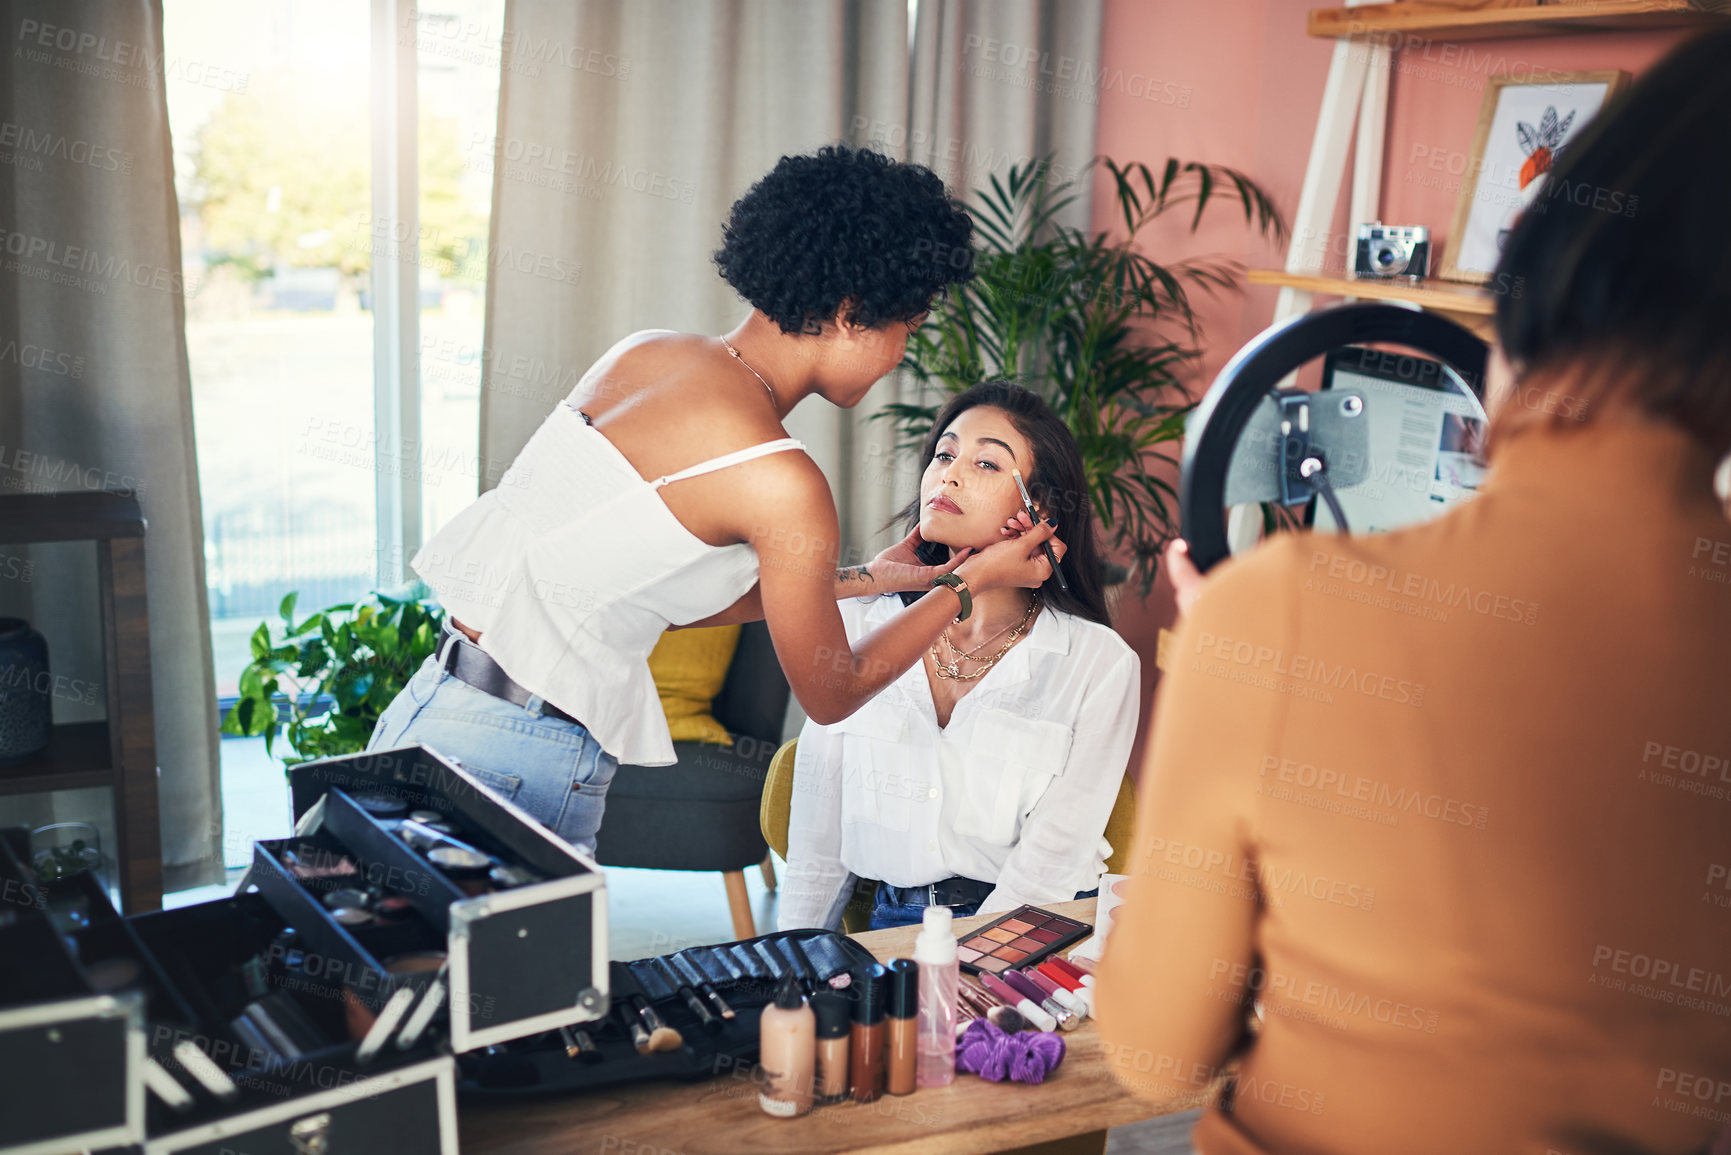 Buy stock photo Shot of a woman getting her makeup done while being recorded